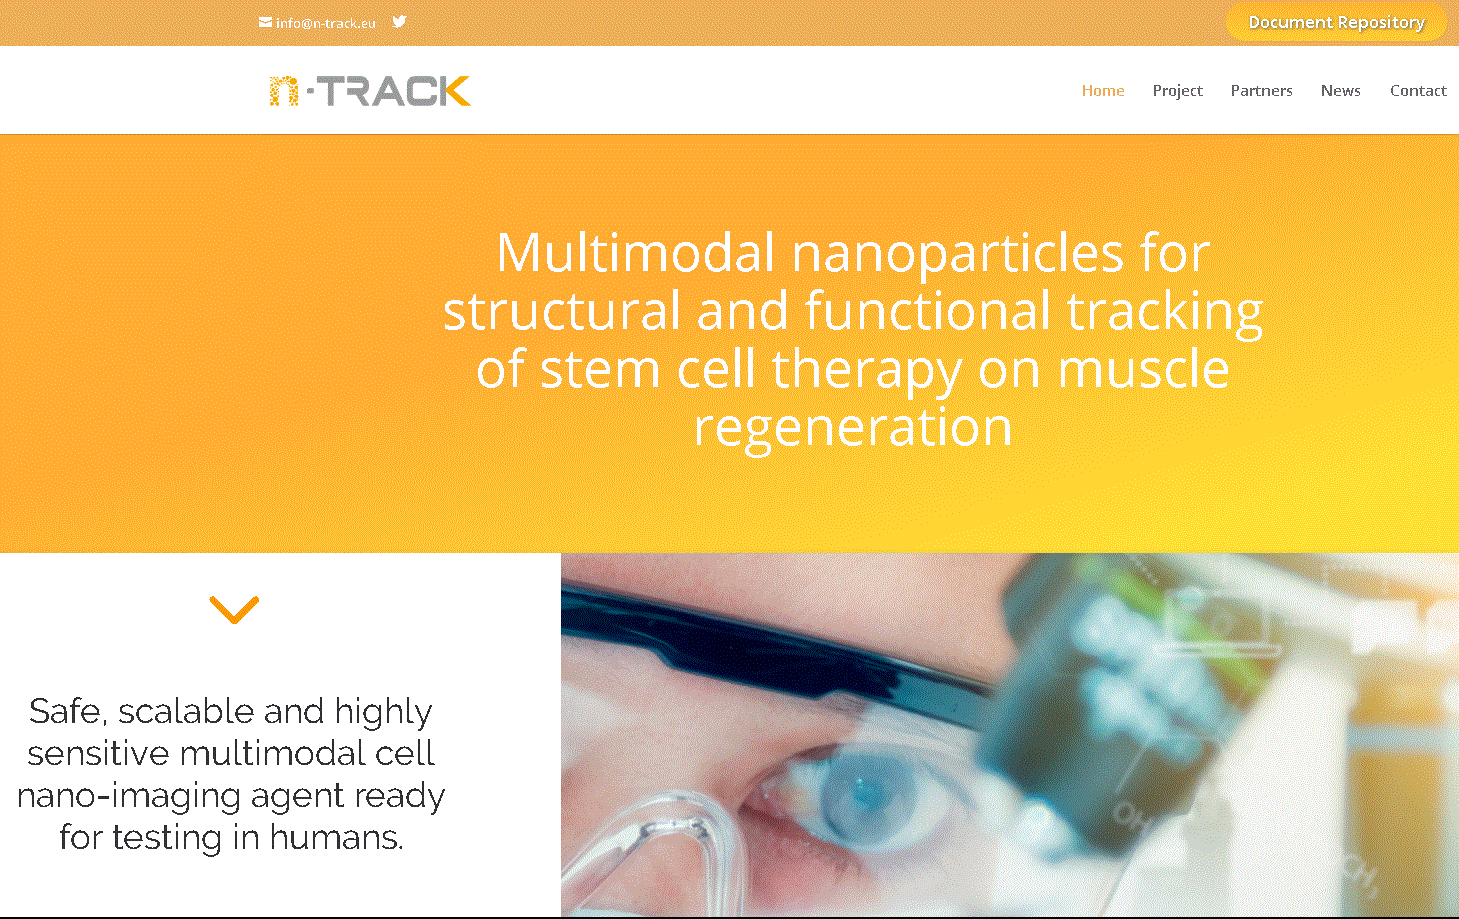 "Check out the new site for our Horizon 2020 project! ""nTRACK: Multimodal nanoparticles for structural and functional tracking of stem cell therapy on muscle regeneration"".